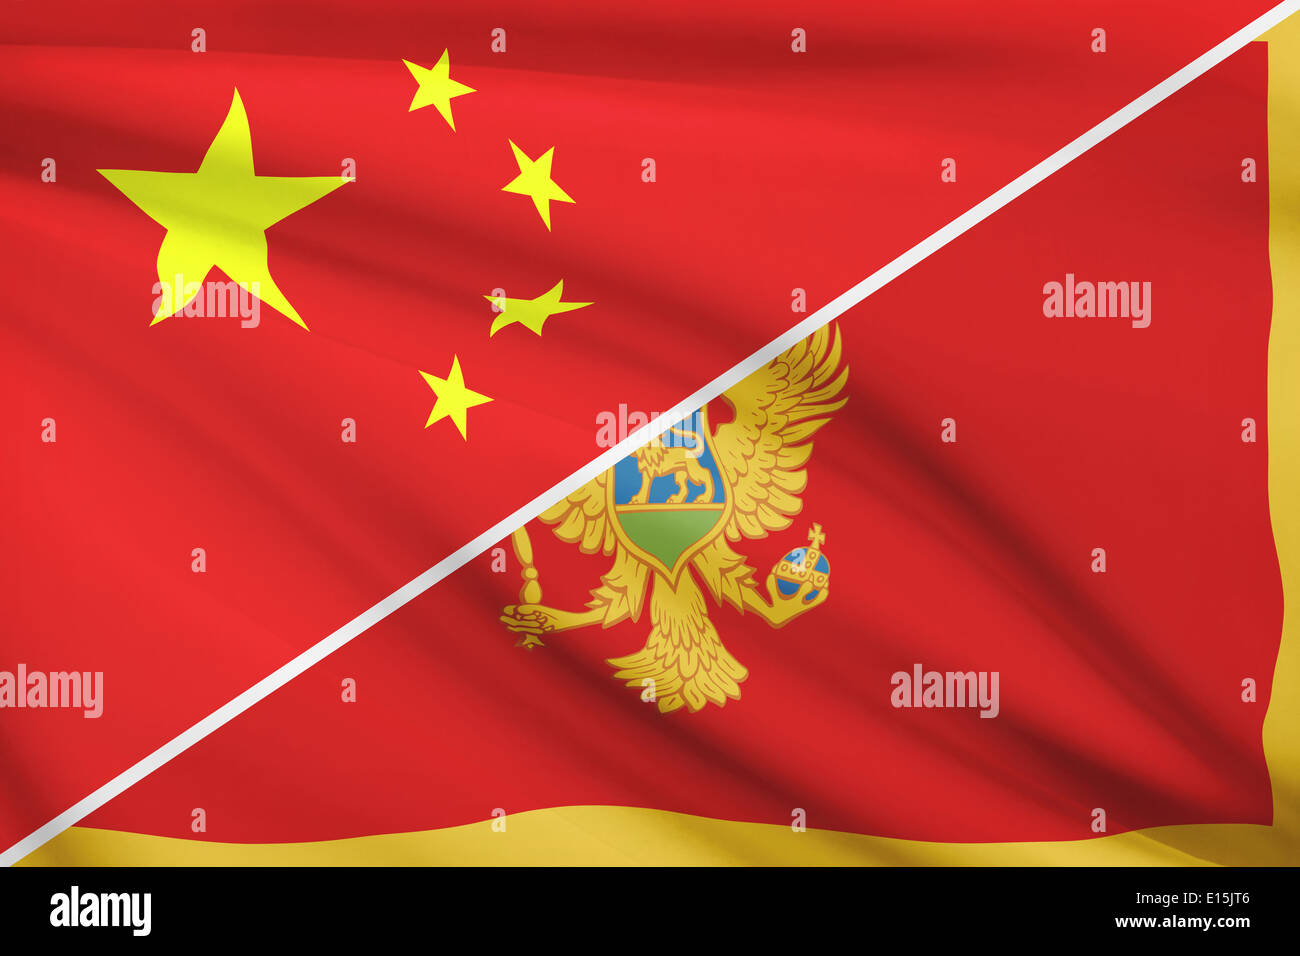 Flags of China and Montenegro blowing in the wind. Part of a series. Stock Photo